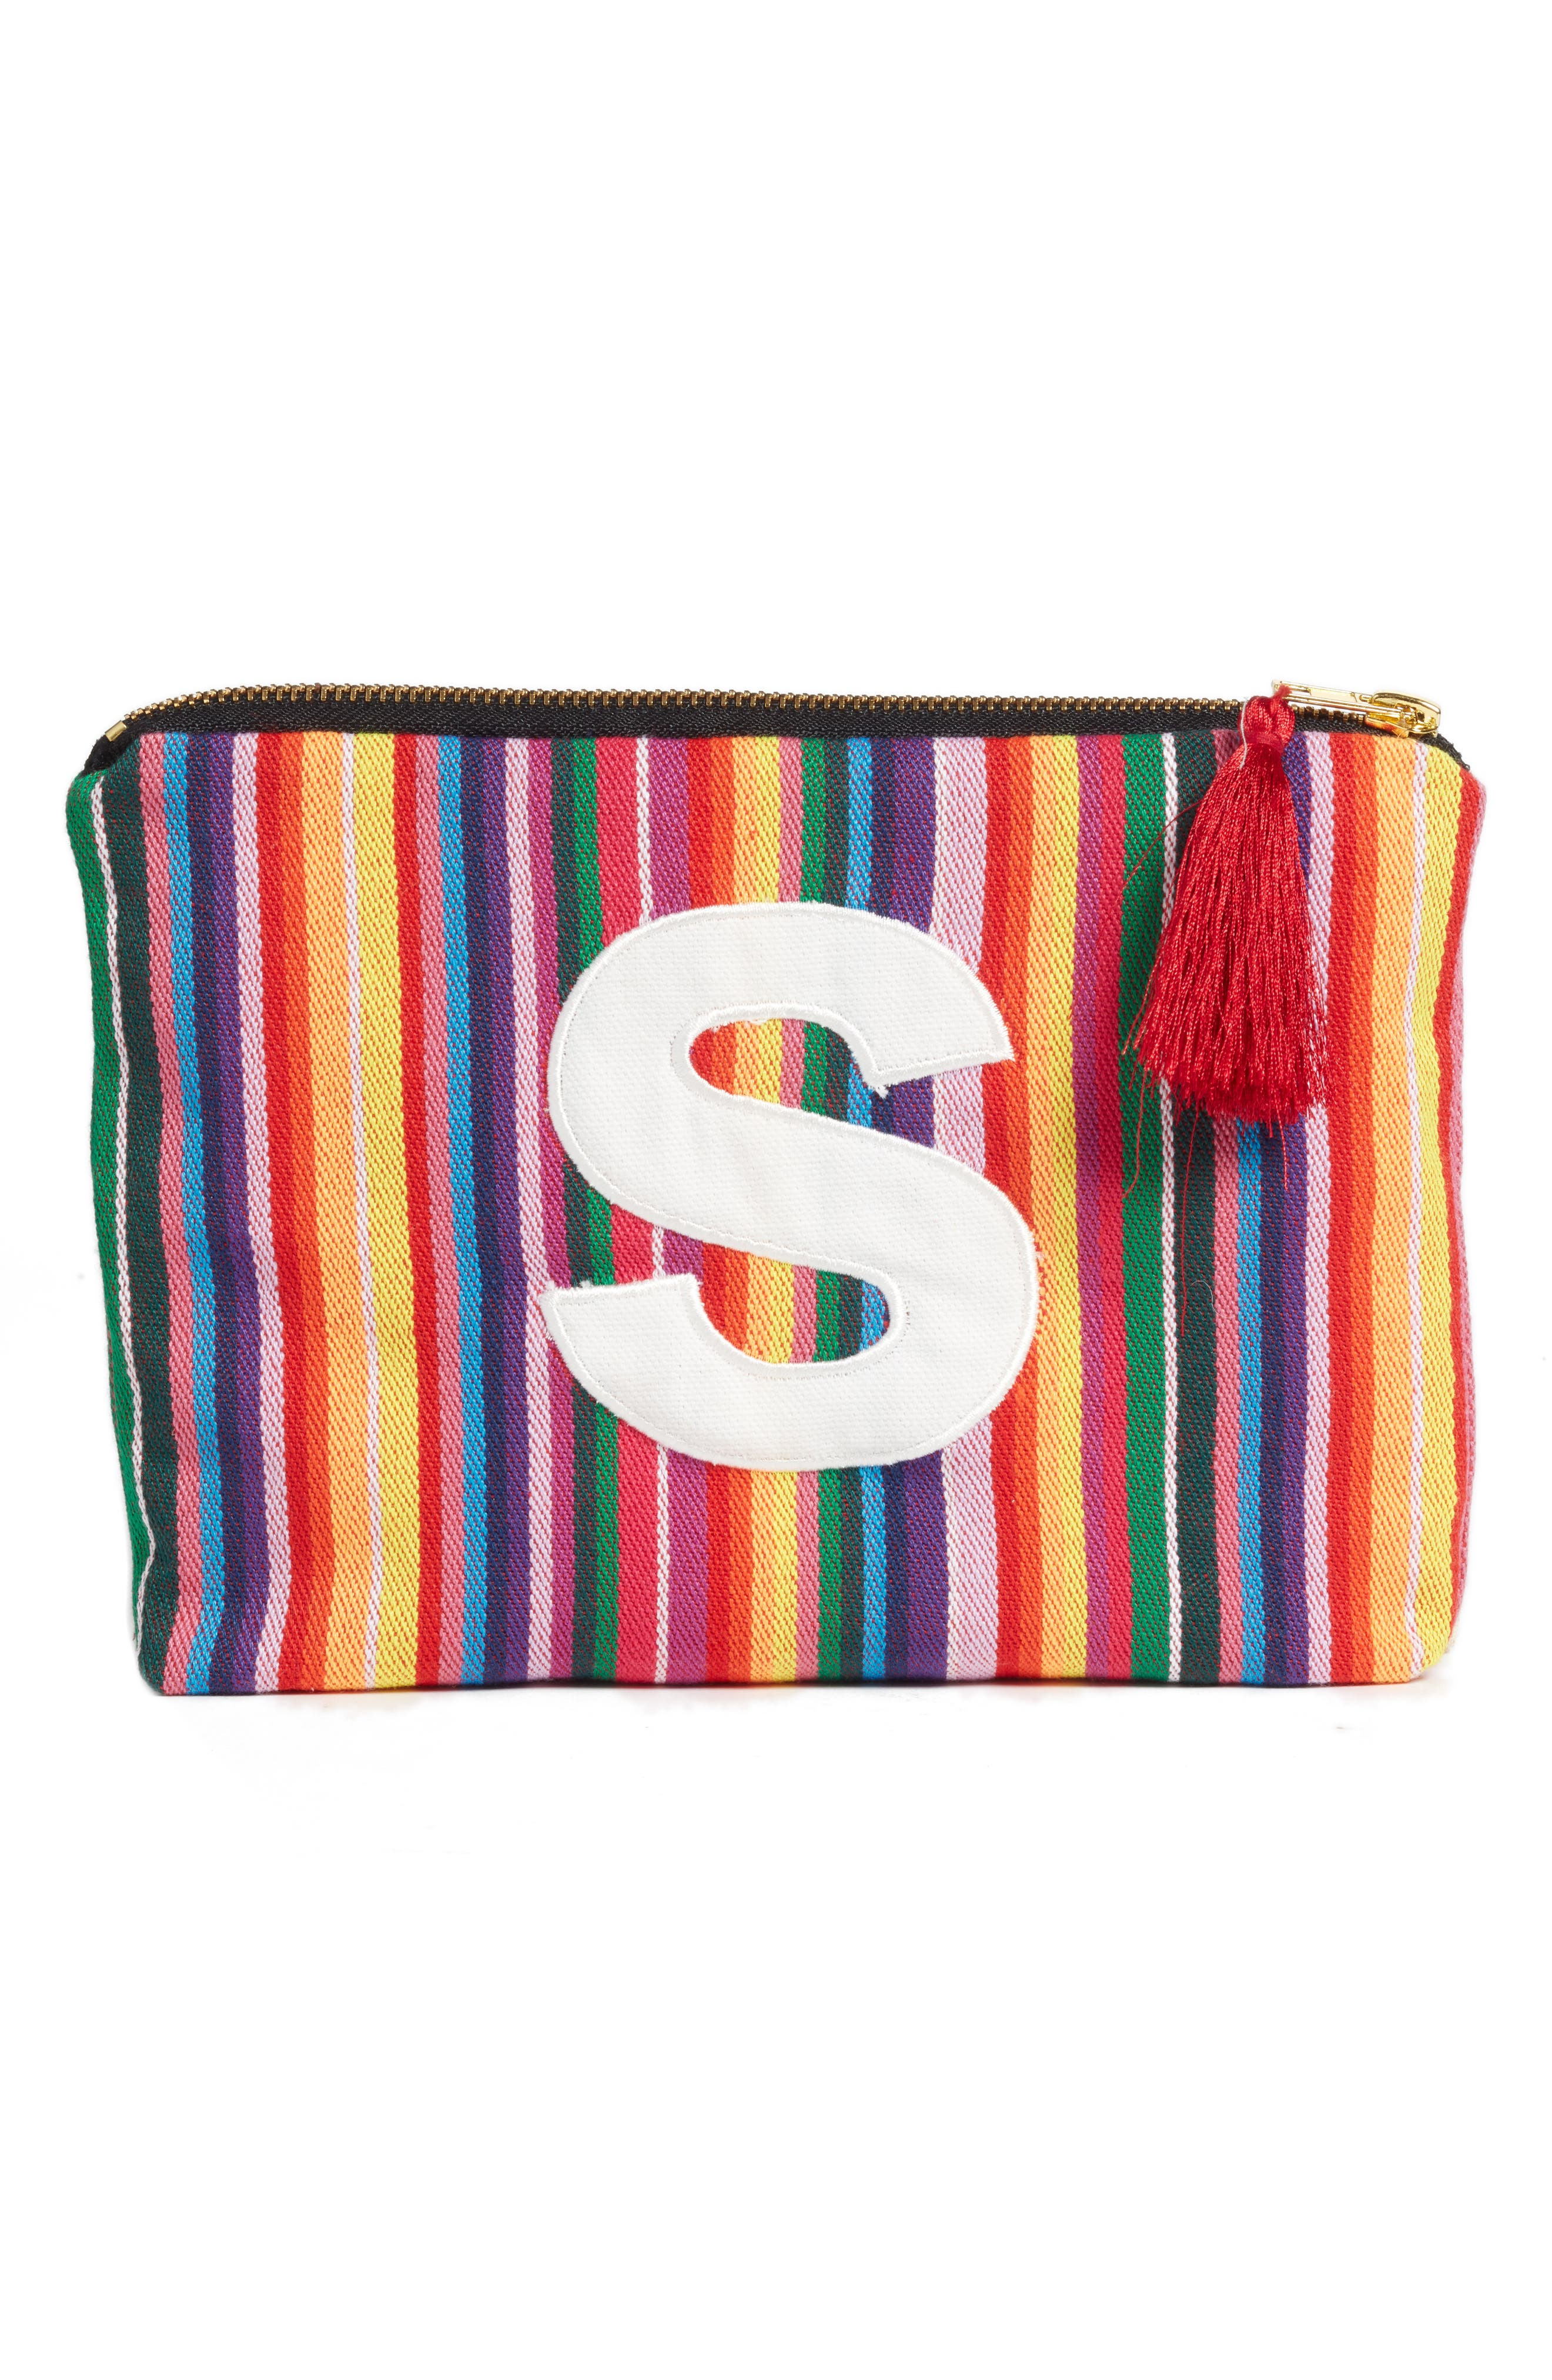 Cabo Initial Zip Pouch,                         Main,                         color, Multi-S